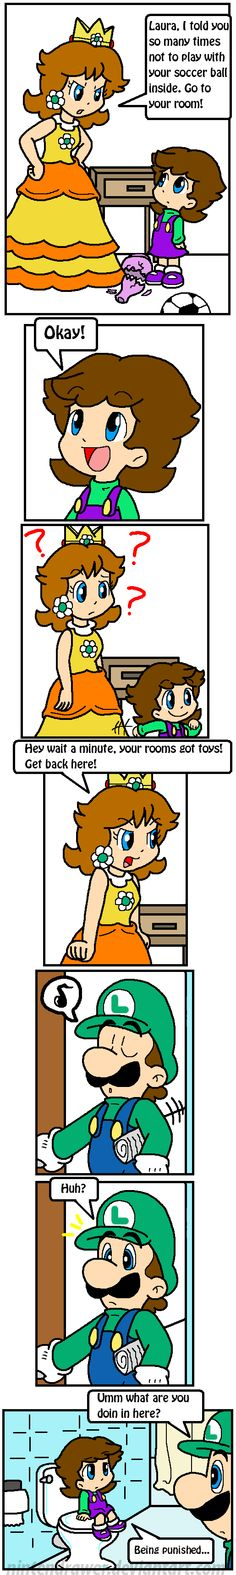 daisy punishes laura for playing soccer in the house by making her sit in the bathroom. Mario Funny, Mario Memes, Mario Bros., Mario And Luigi, Luigi And Daisy, Mario Comics, Super Mario Art, Family Fun Games, Princess Daisy